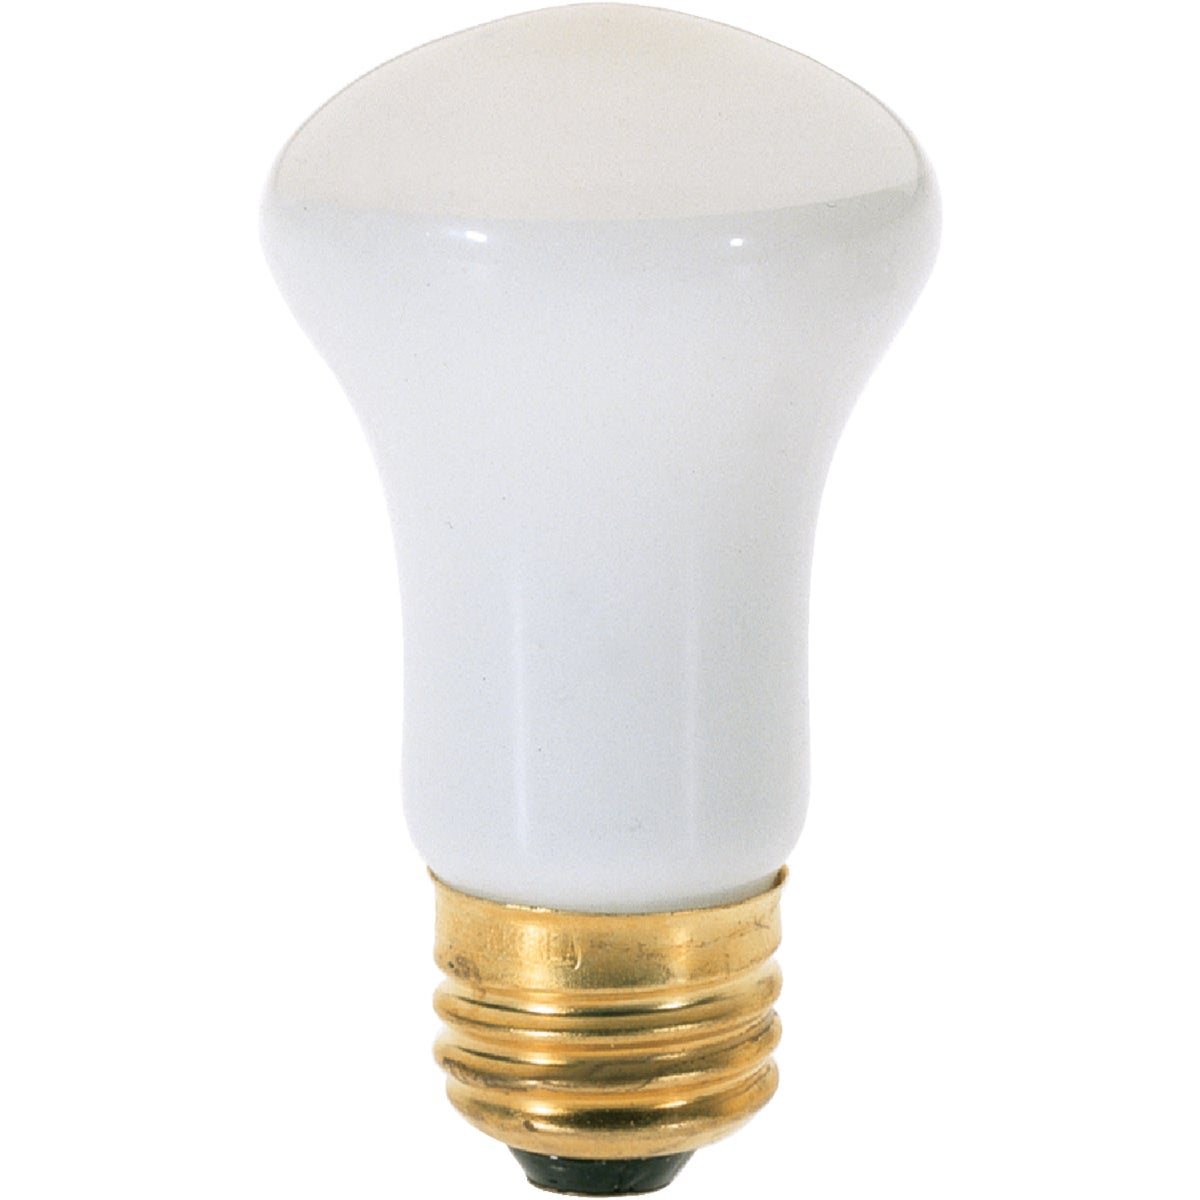 40W MED REFLECTOR BULB - 03627 by Westinghouse Lightng